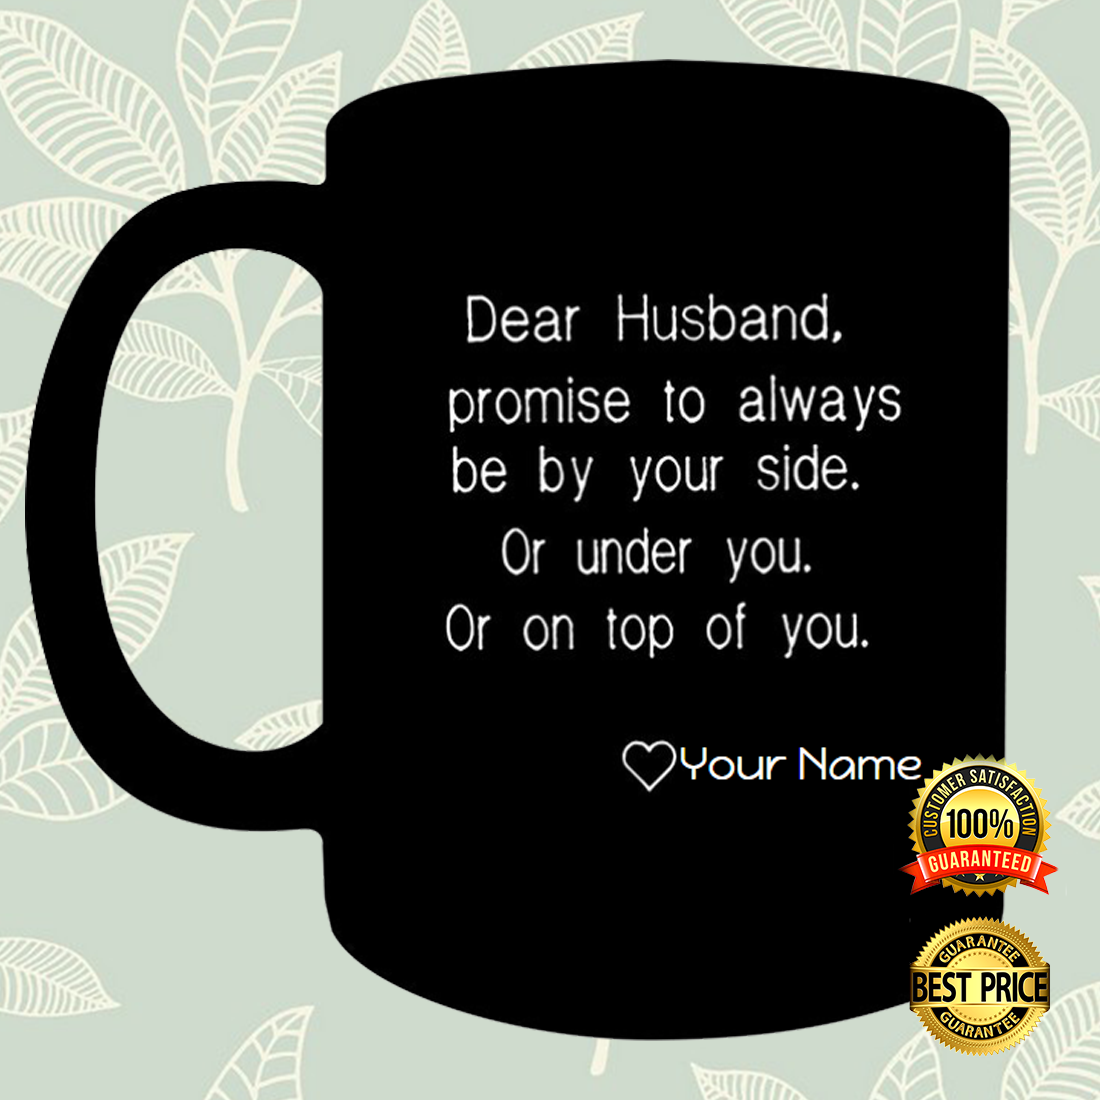 Personalized dear husband promise to always be your side or under you or on top of you mug 4